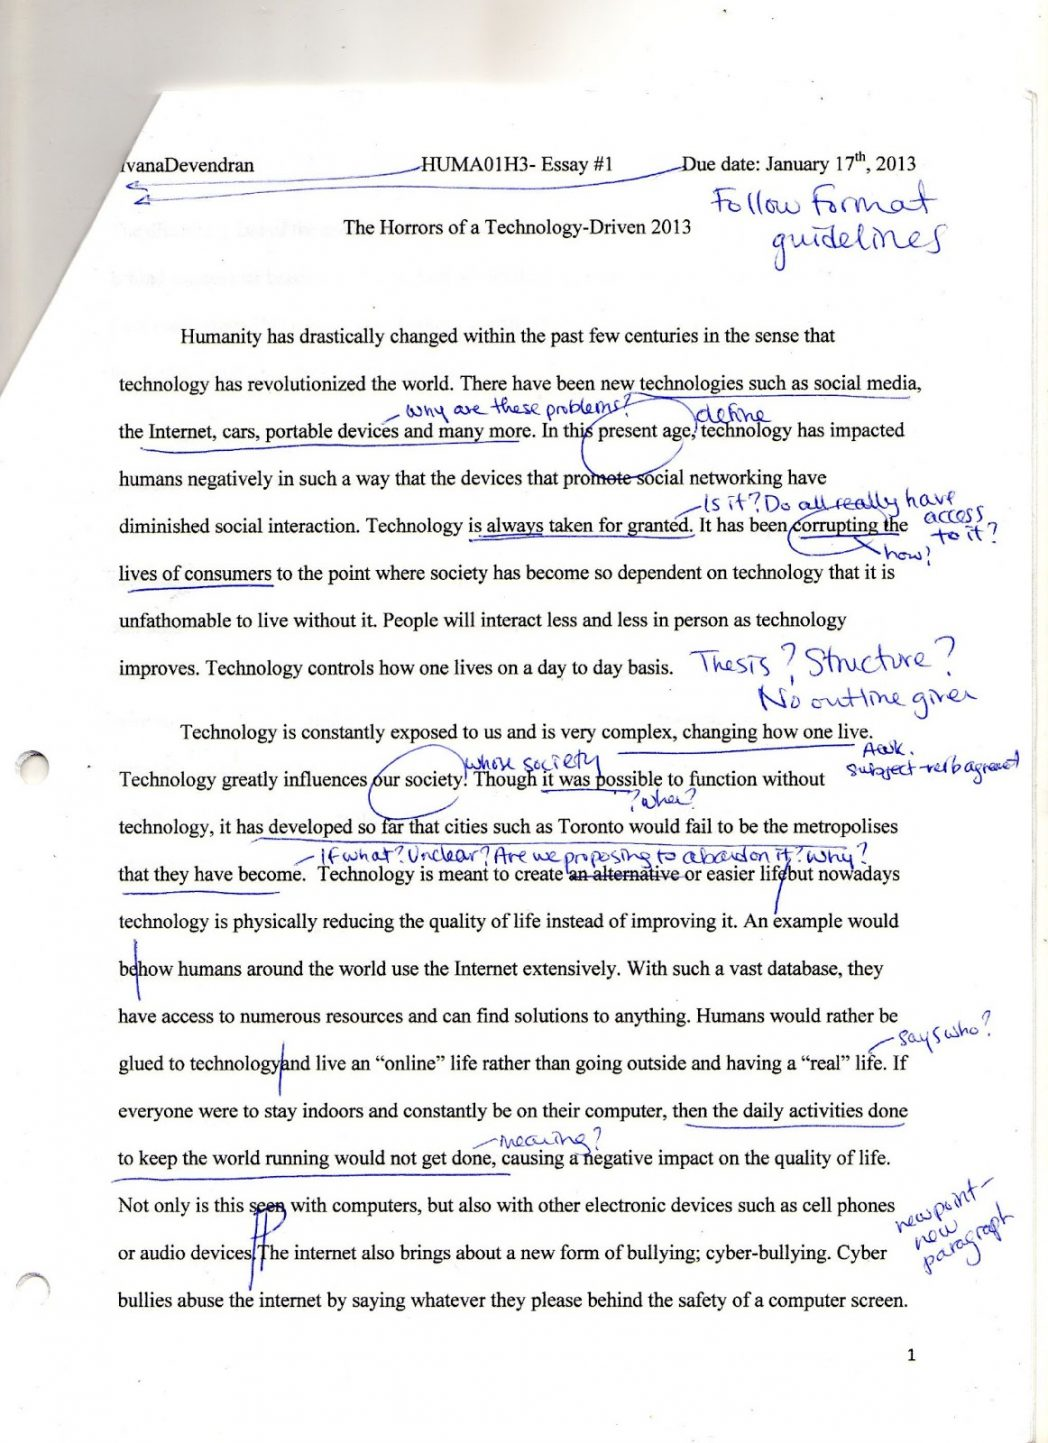 002 Essay Example Negative Effects Of Technology Topics On Humanities Positive I And Causes Unbelievable Short Communication Information Full